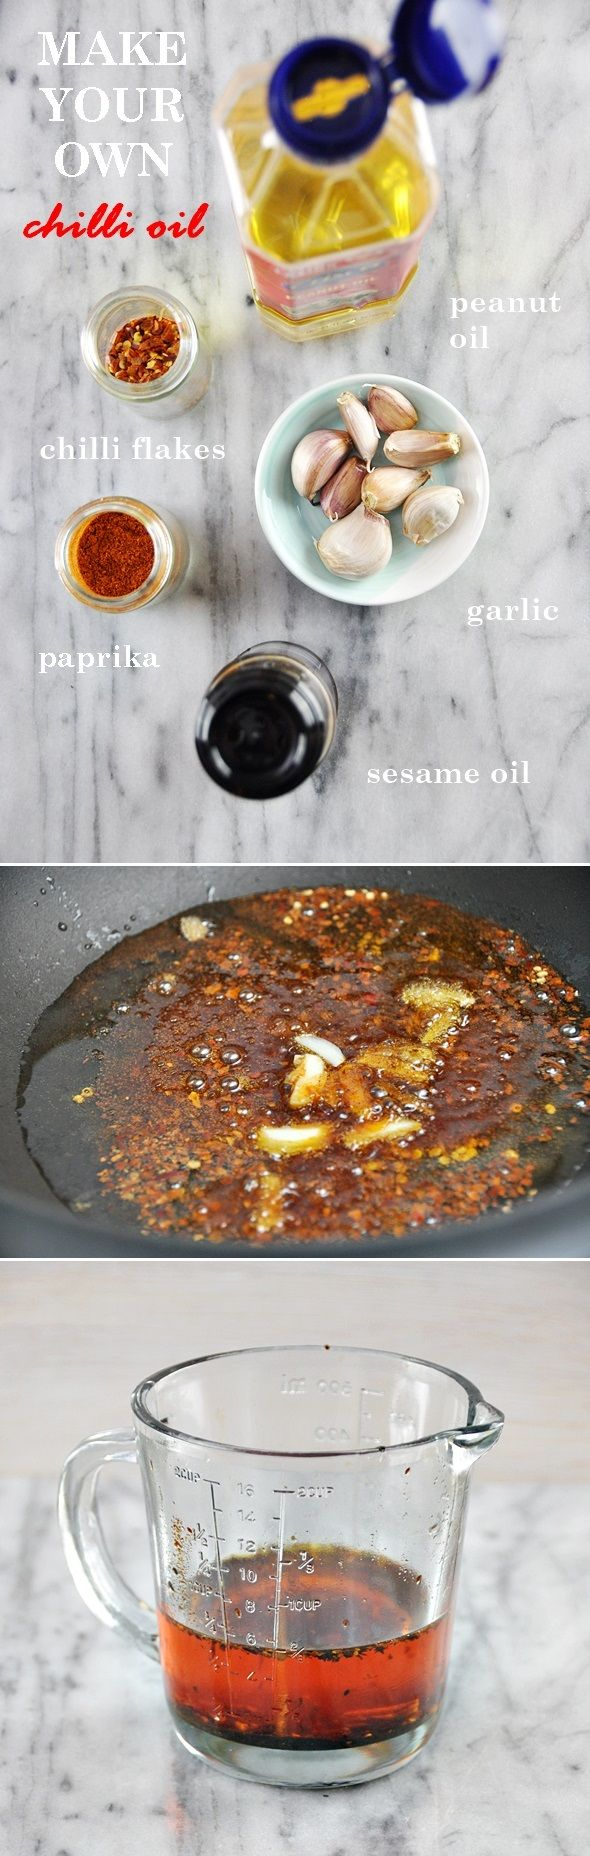 Recipe for homemade chilli oil | Forget about store-bought chilli infused oil - you can easily make this at home. The best part is you can adjust the spiciness to taste!